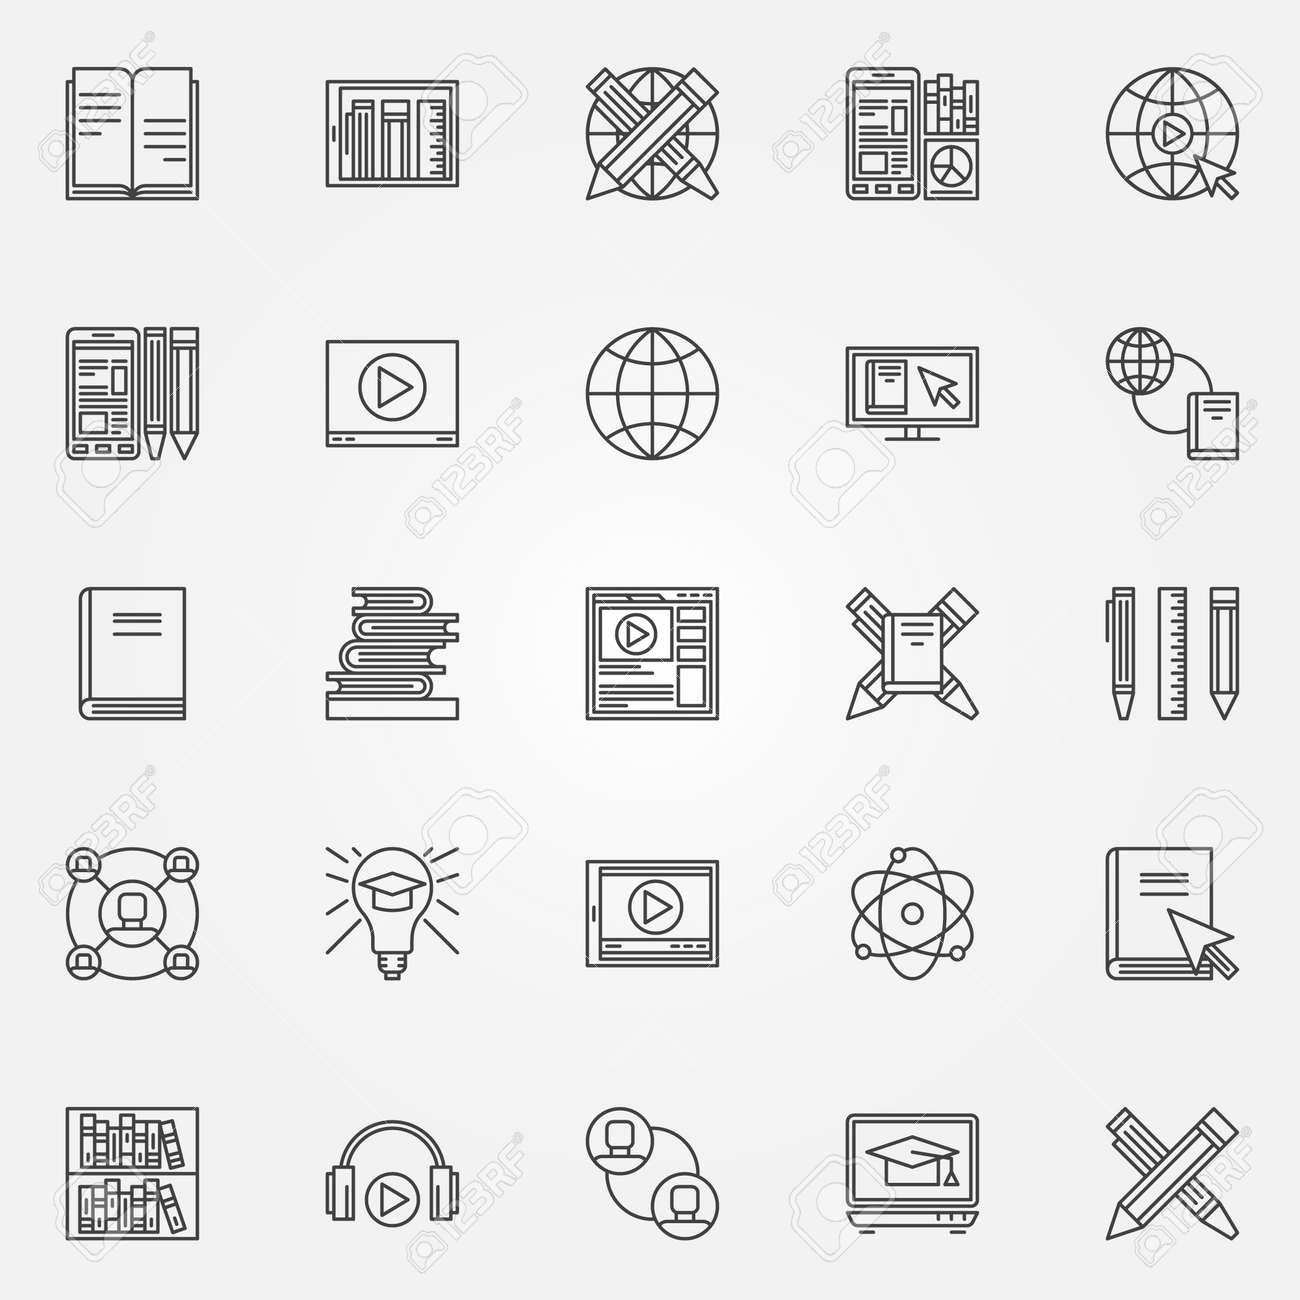 Online Education Icons Set Vector Collection Of Thin Line Symbols